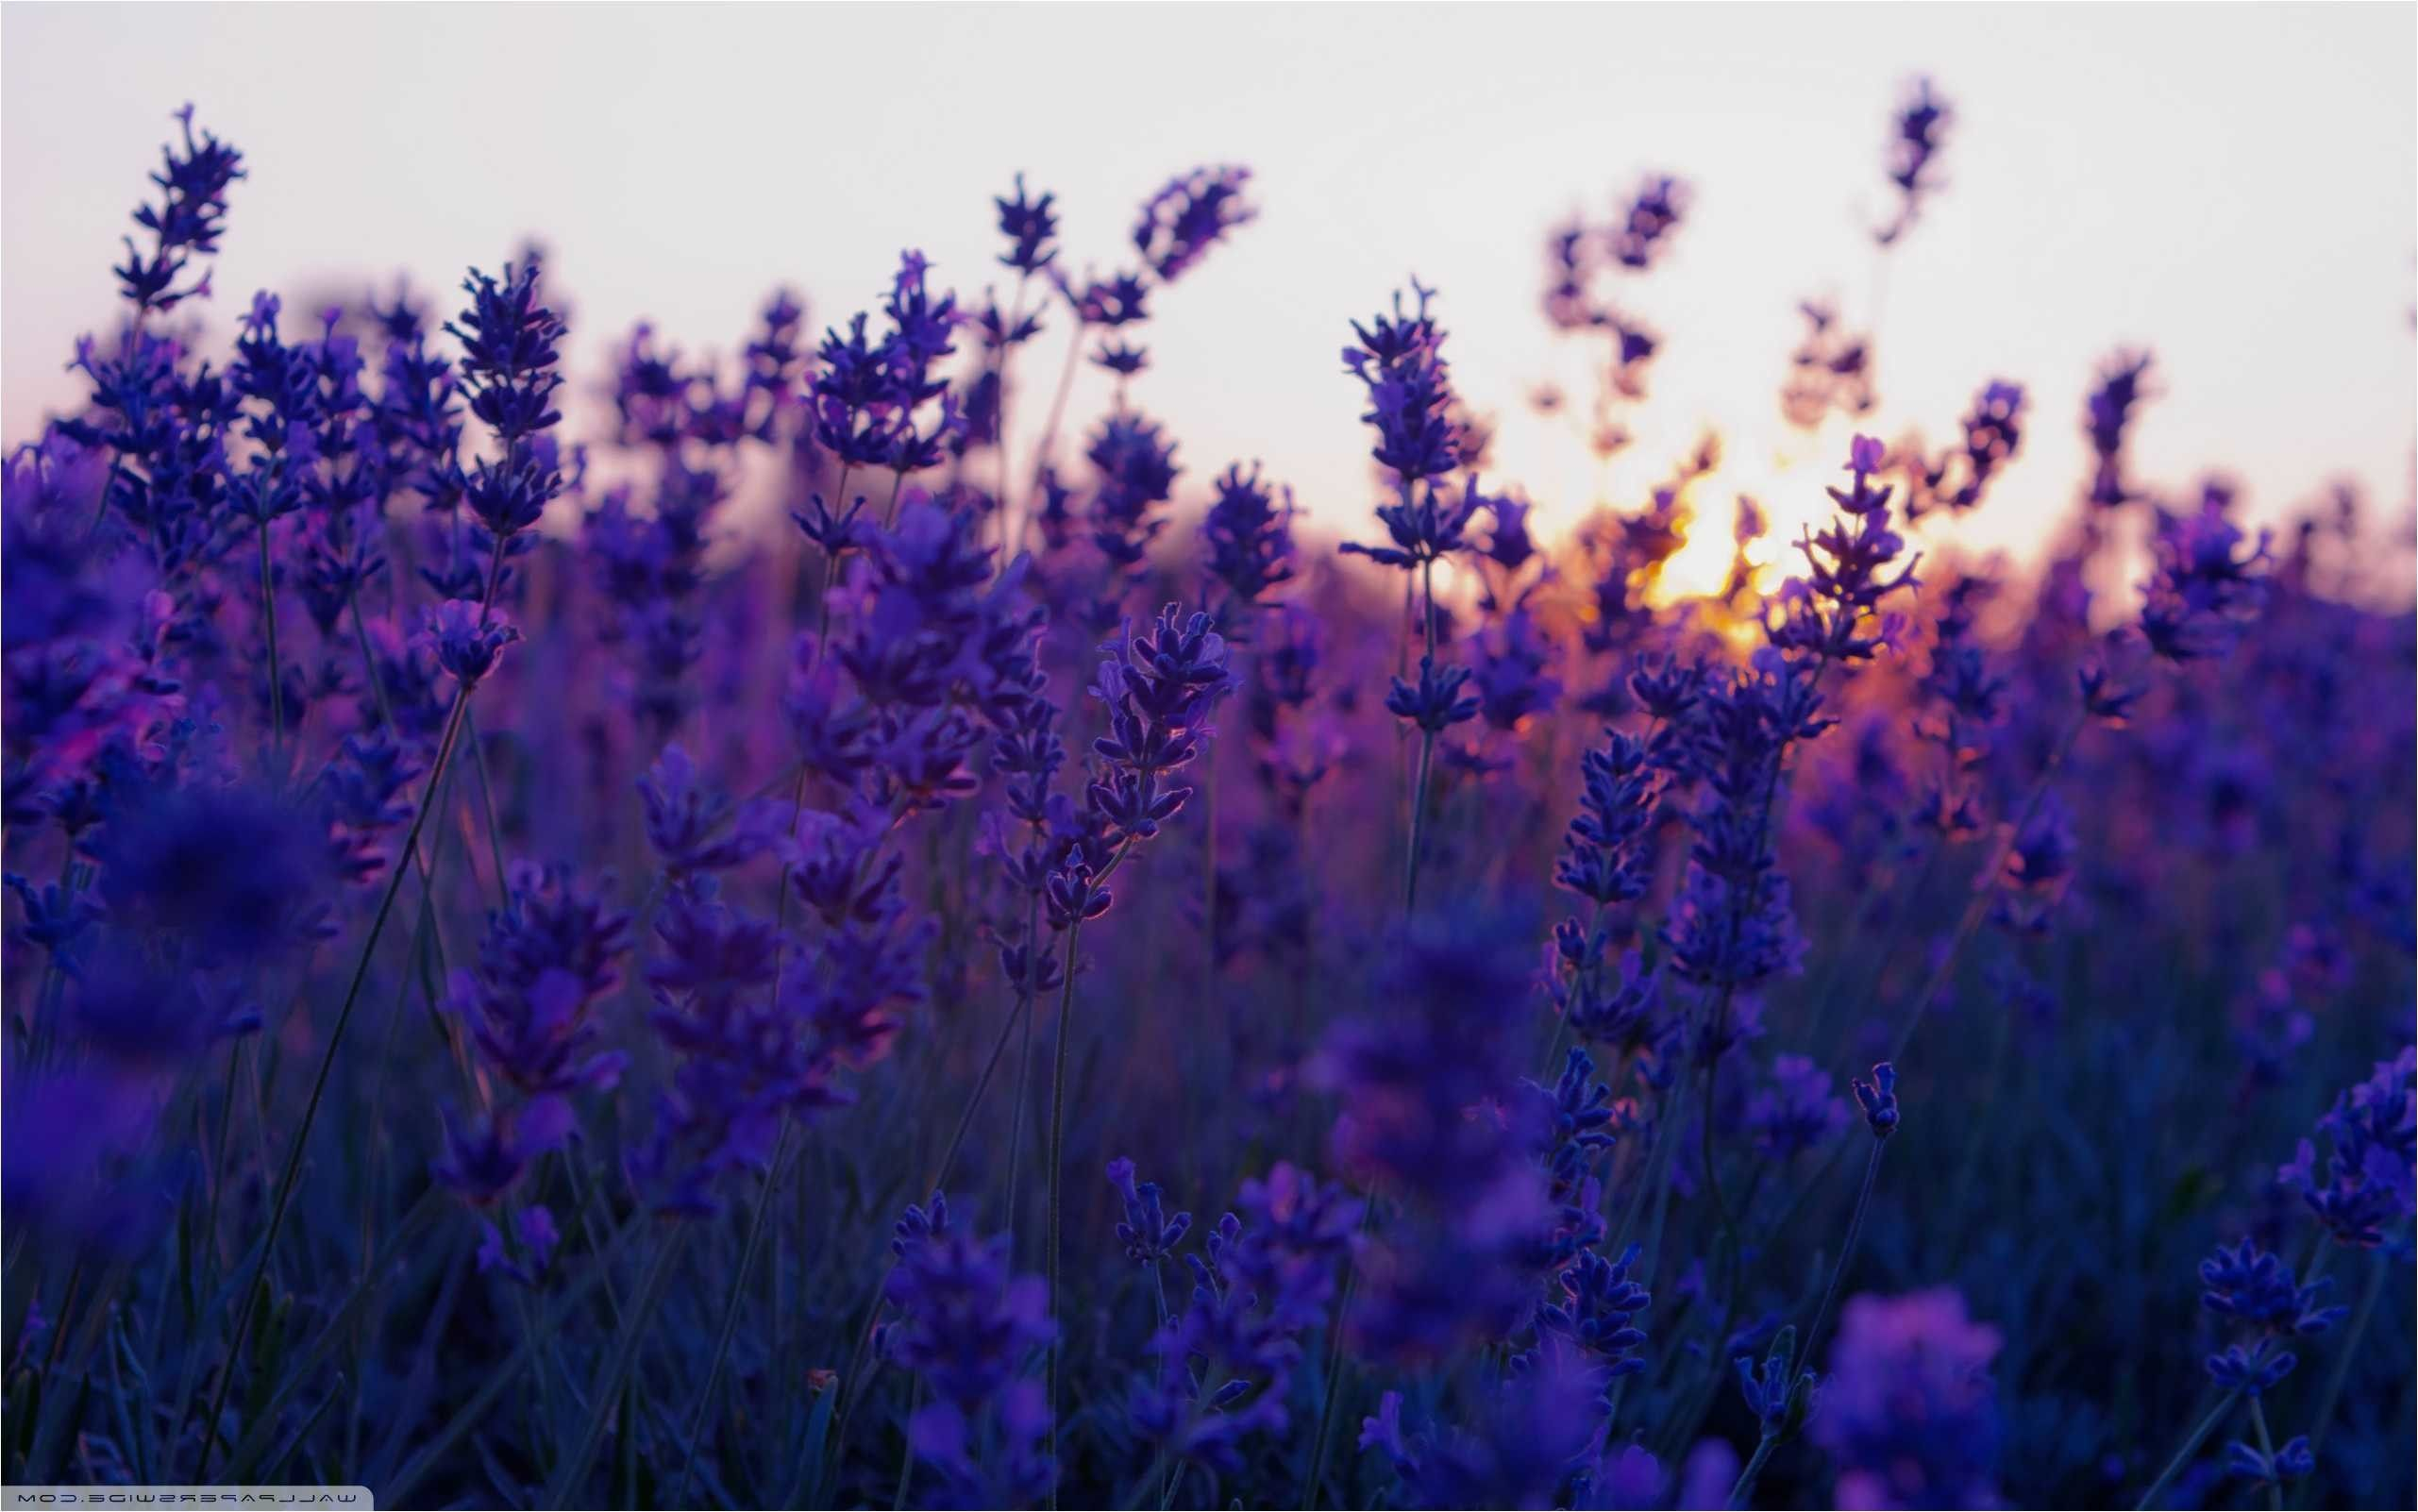 76 Lavender Wallpapers On Wallpaperplay In 2020 Computer Wallpaper Laptop Wallpaper Aesthetic Desktop Wallpaper